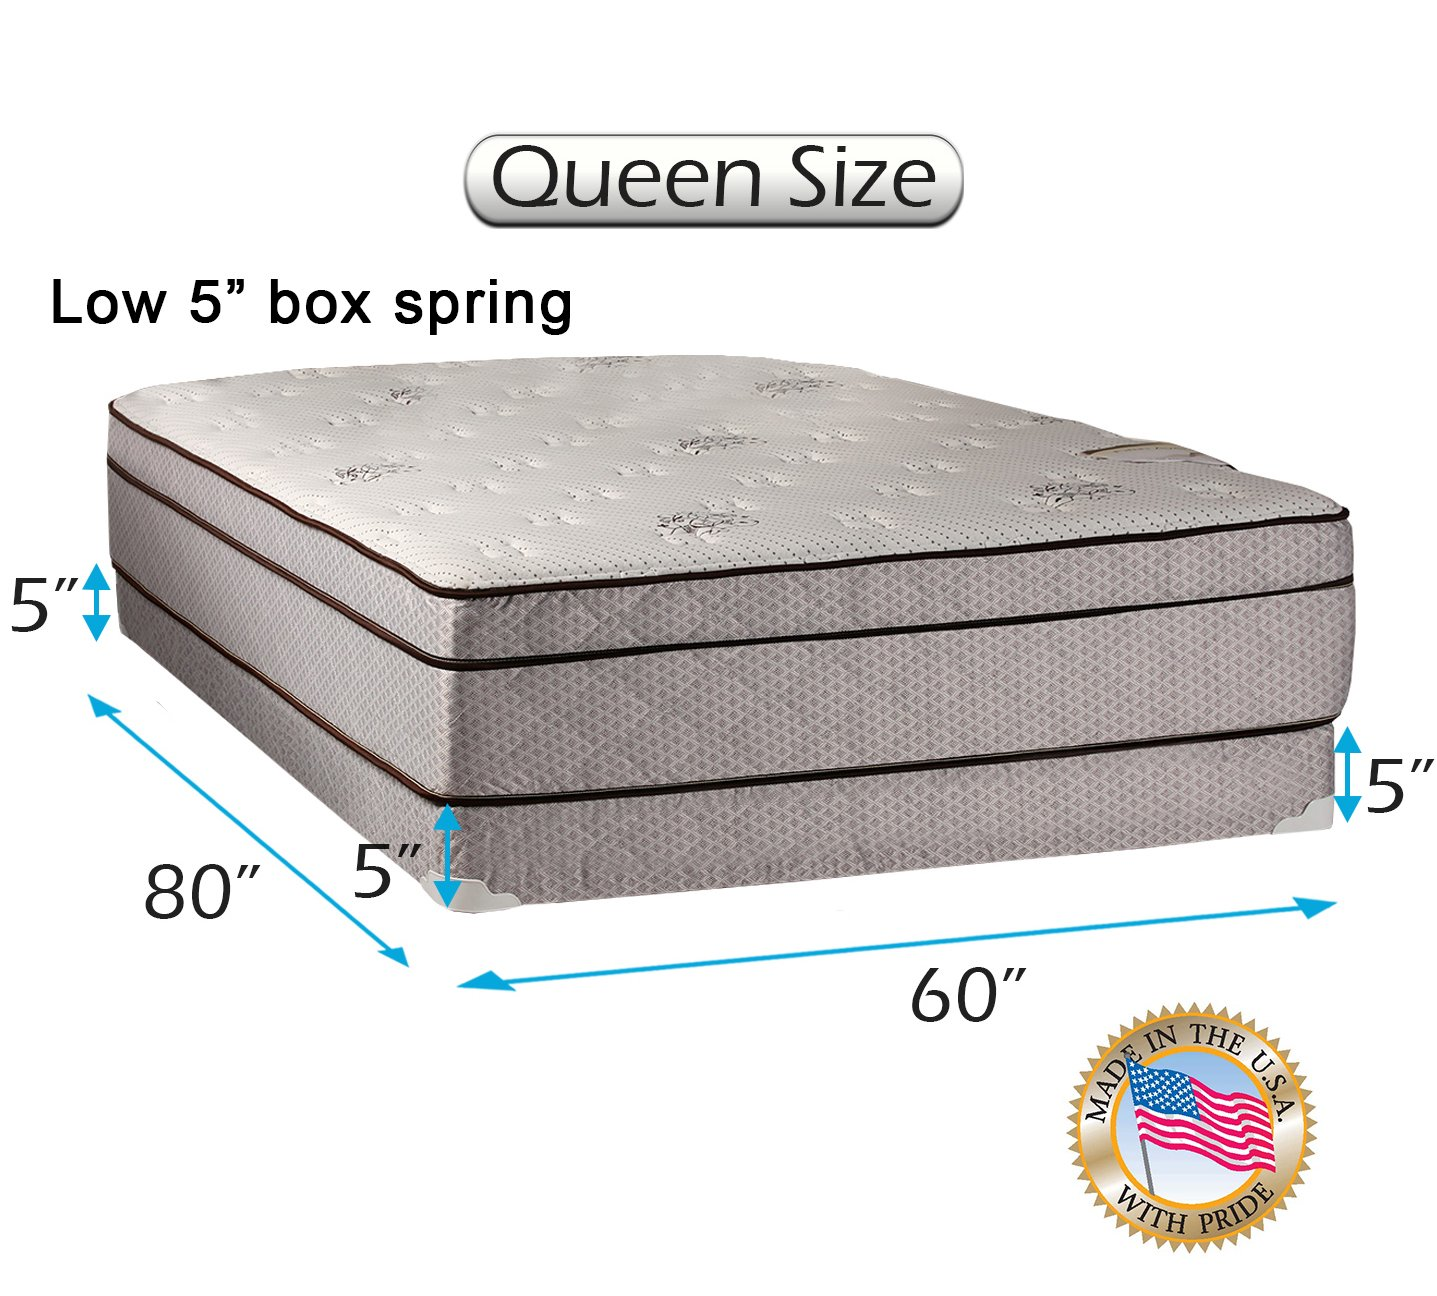 Dream Solutions Fifth Ave Extra Soft Foam Eurotop (PillowTop) Queen Mattress & Low 5'' Height Box Spring Set with Mattress Cover Protector Included - Fully Assembled, Orthopedic, Quality Sleep System by Dream Solutions USA